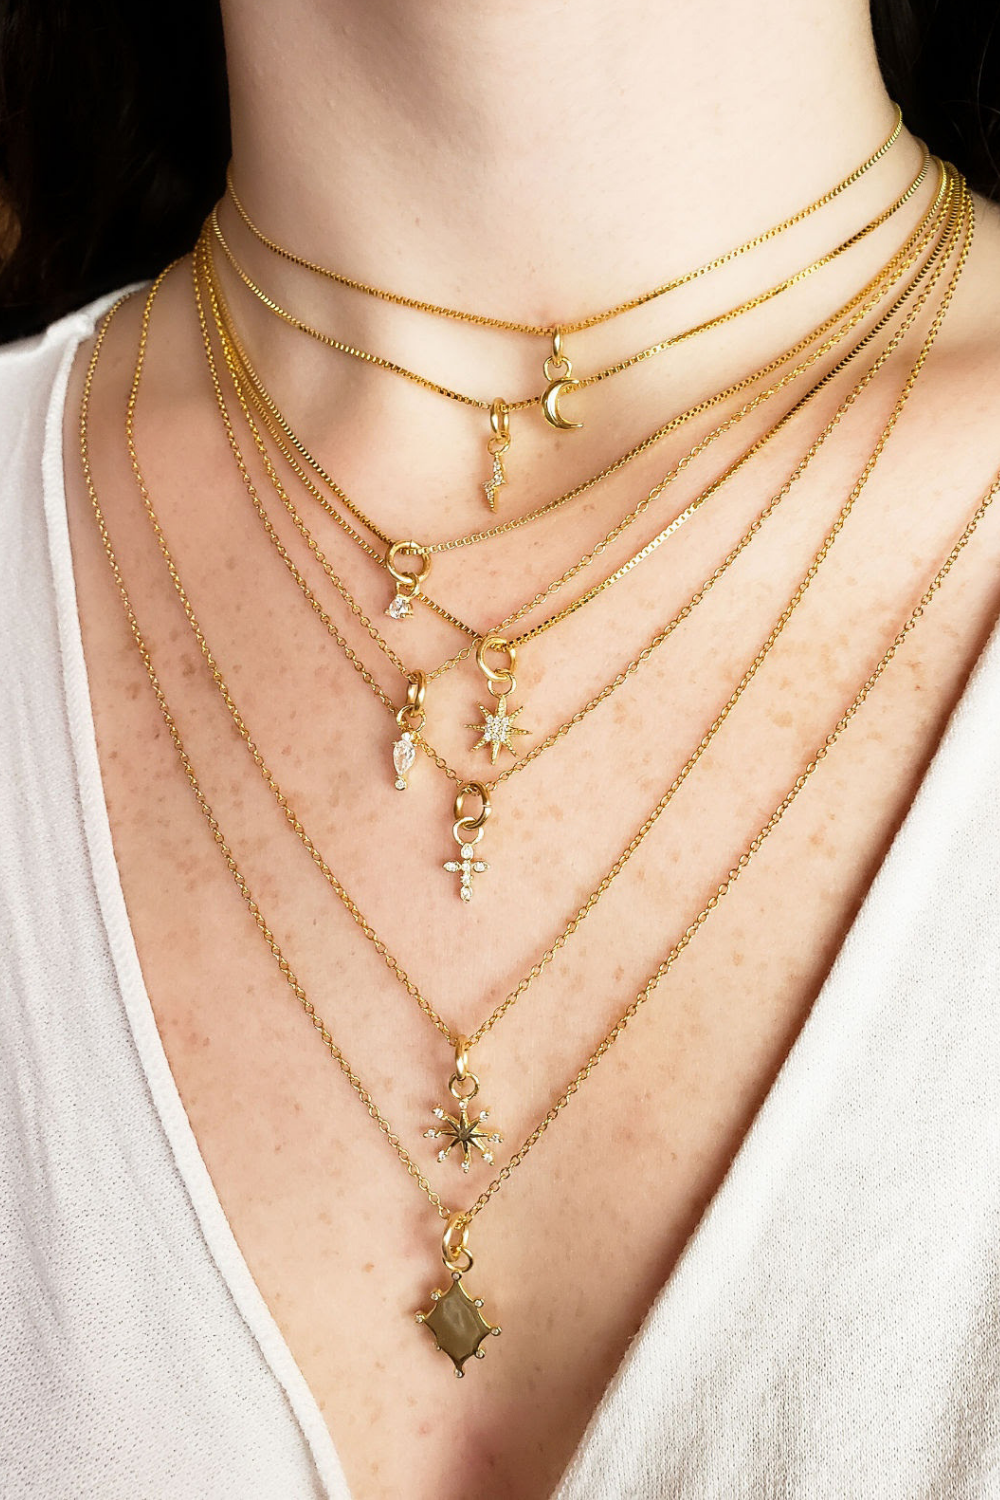 Build Your Perfect Necklace Stack Shop Gold Necklace Layers At Wholesale Pricing In 2021 Chunky Gold Necklaces Gold Pendant Necklace Cable Necklace